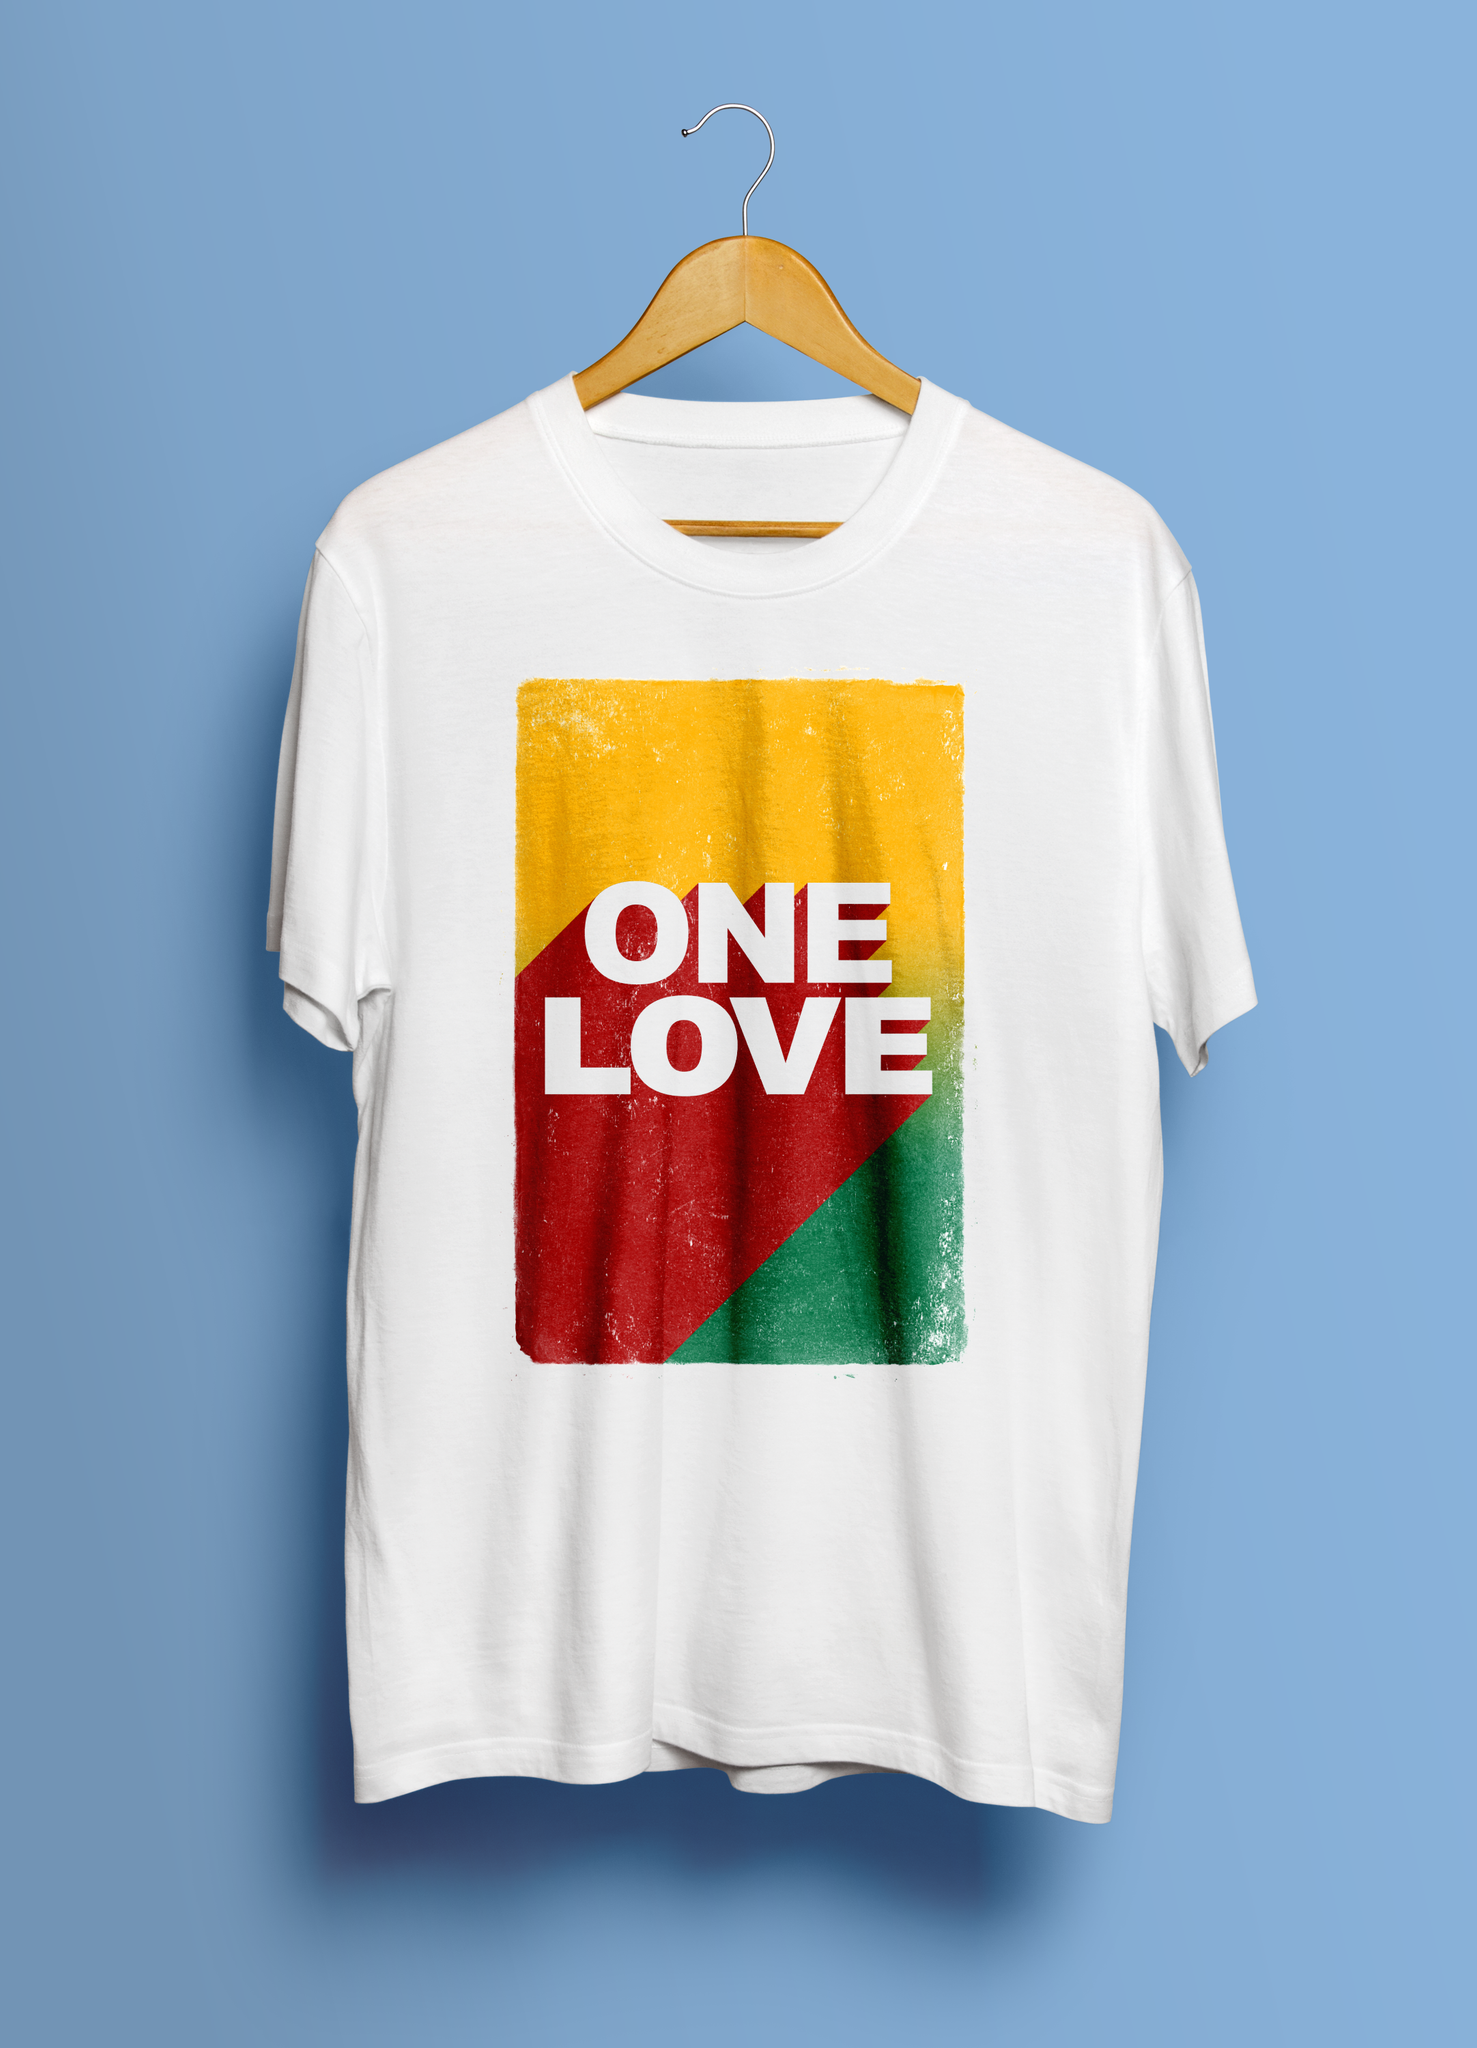 One Love (Unisex T-Shirt)